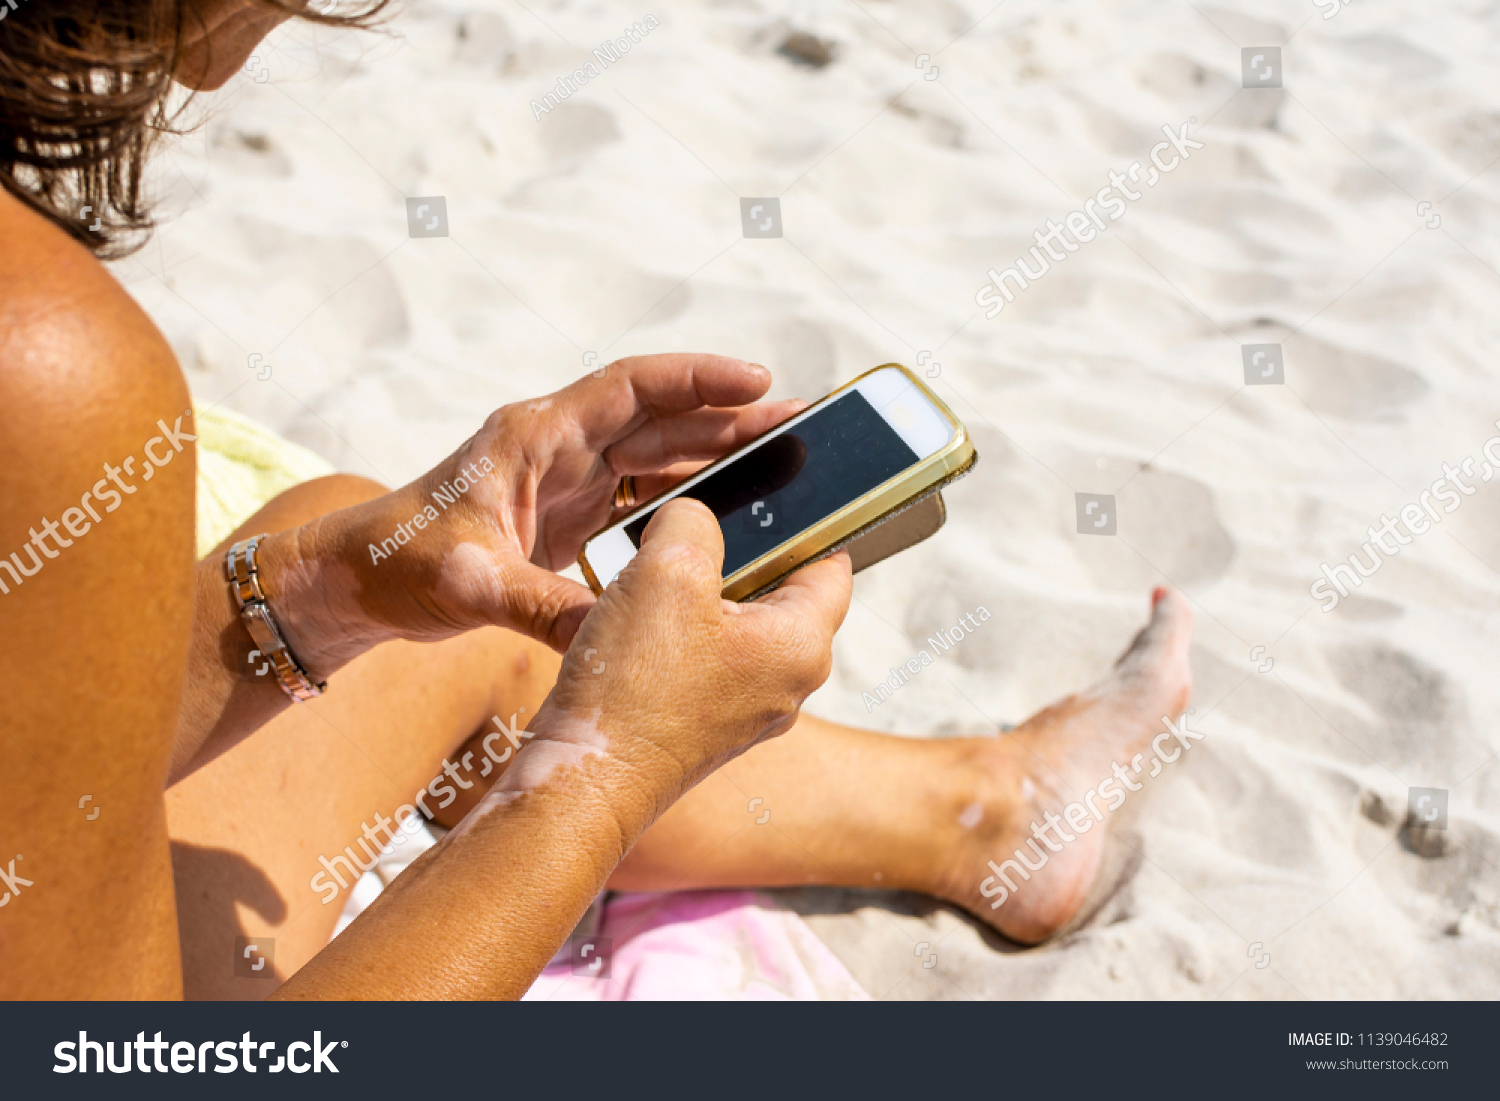 Woman with vitiligo on her hands is using a phone and gets suntanned on the beach  #1139046482